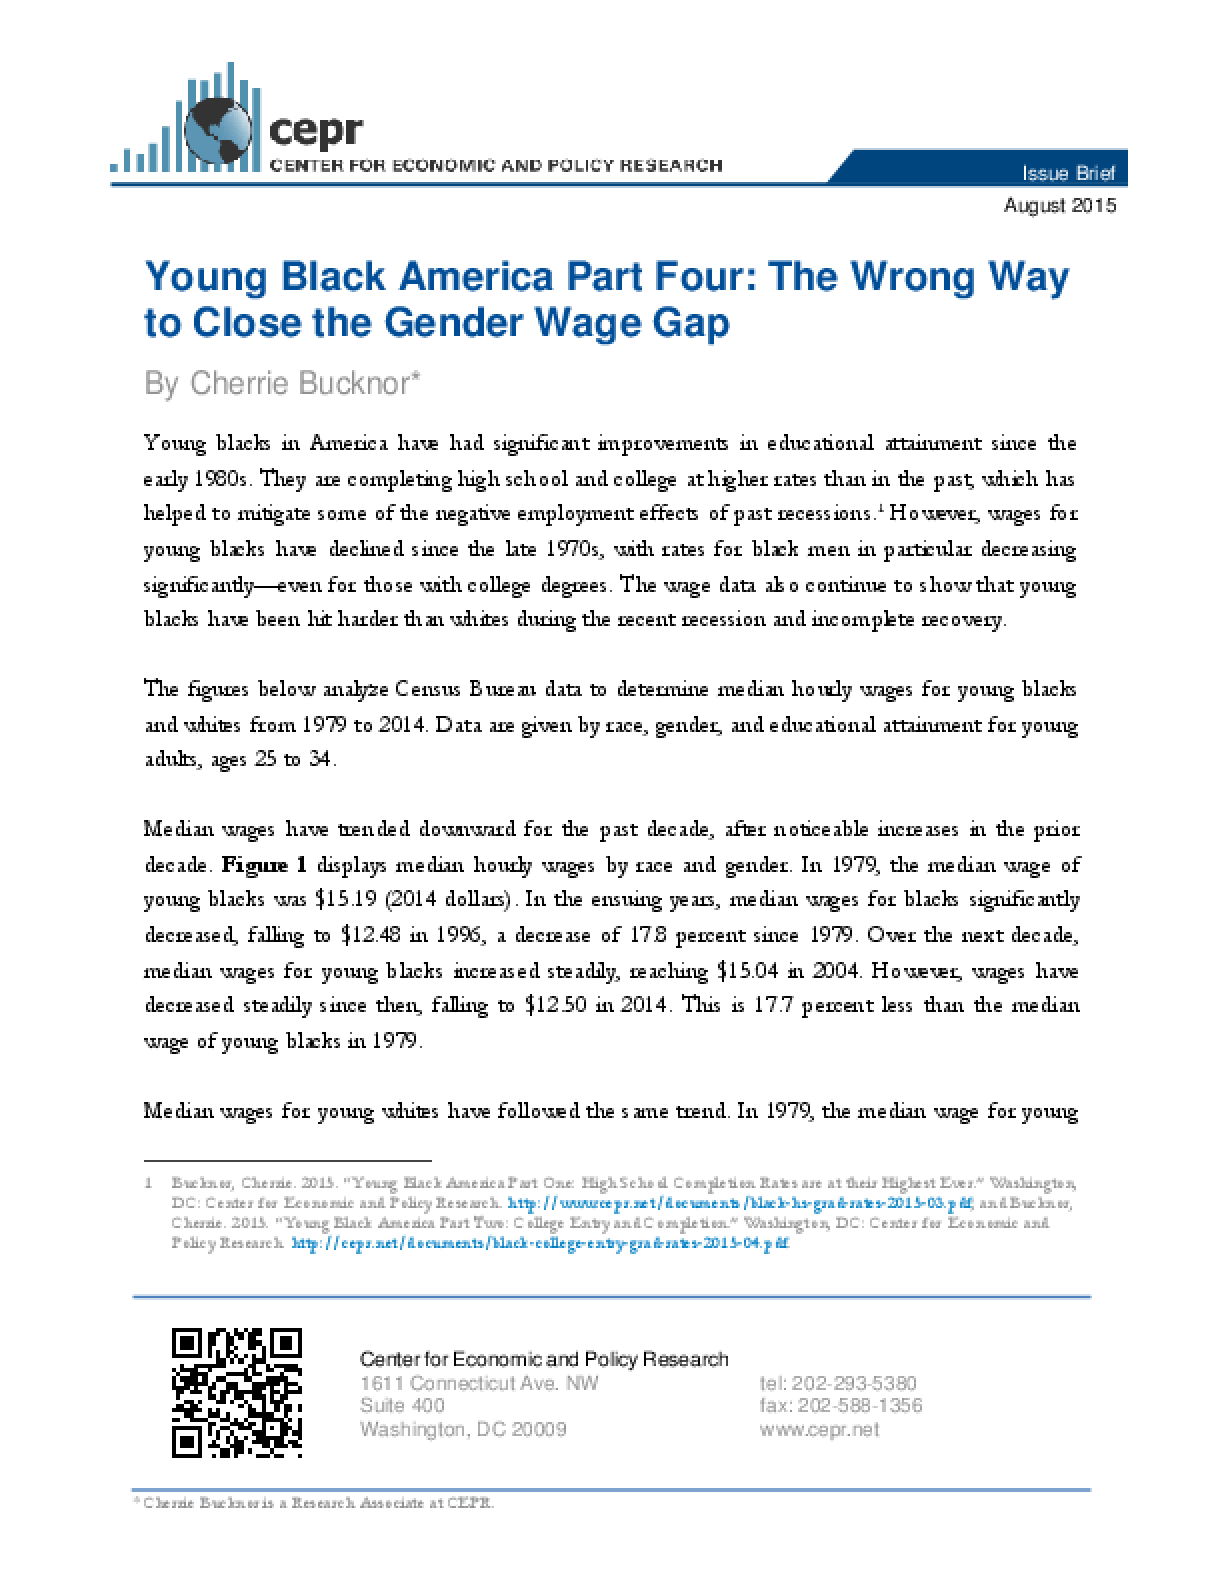 Young Black America Part Four: The Wrong Way to Close the Gender Wage Gap